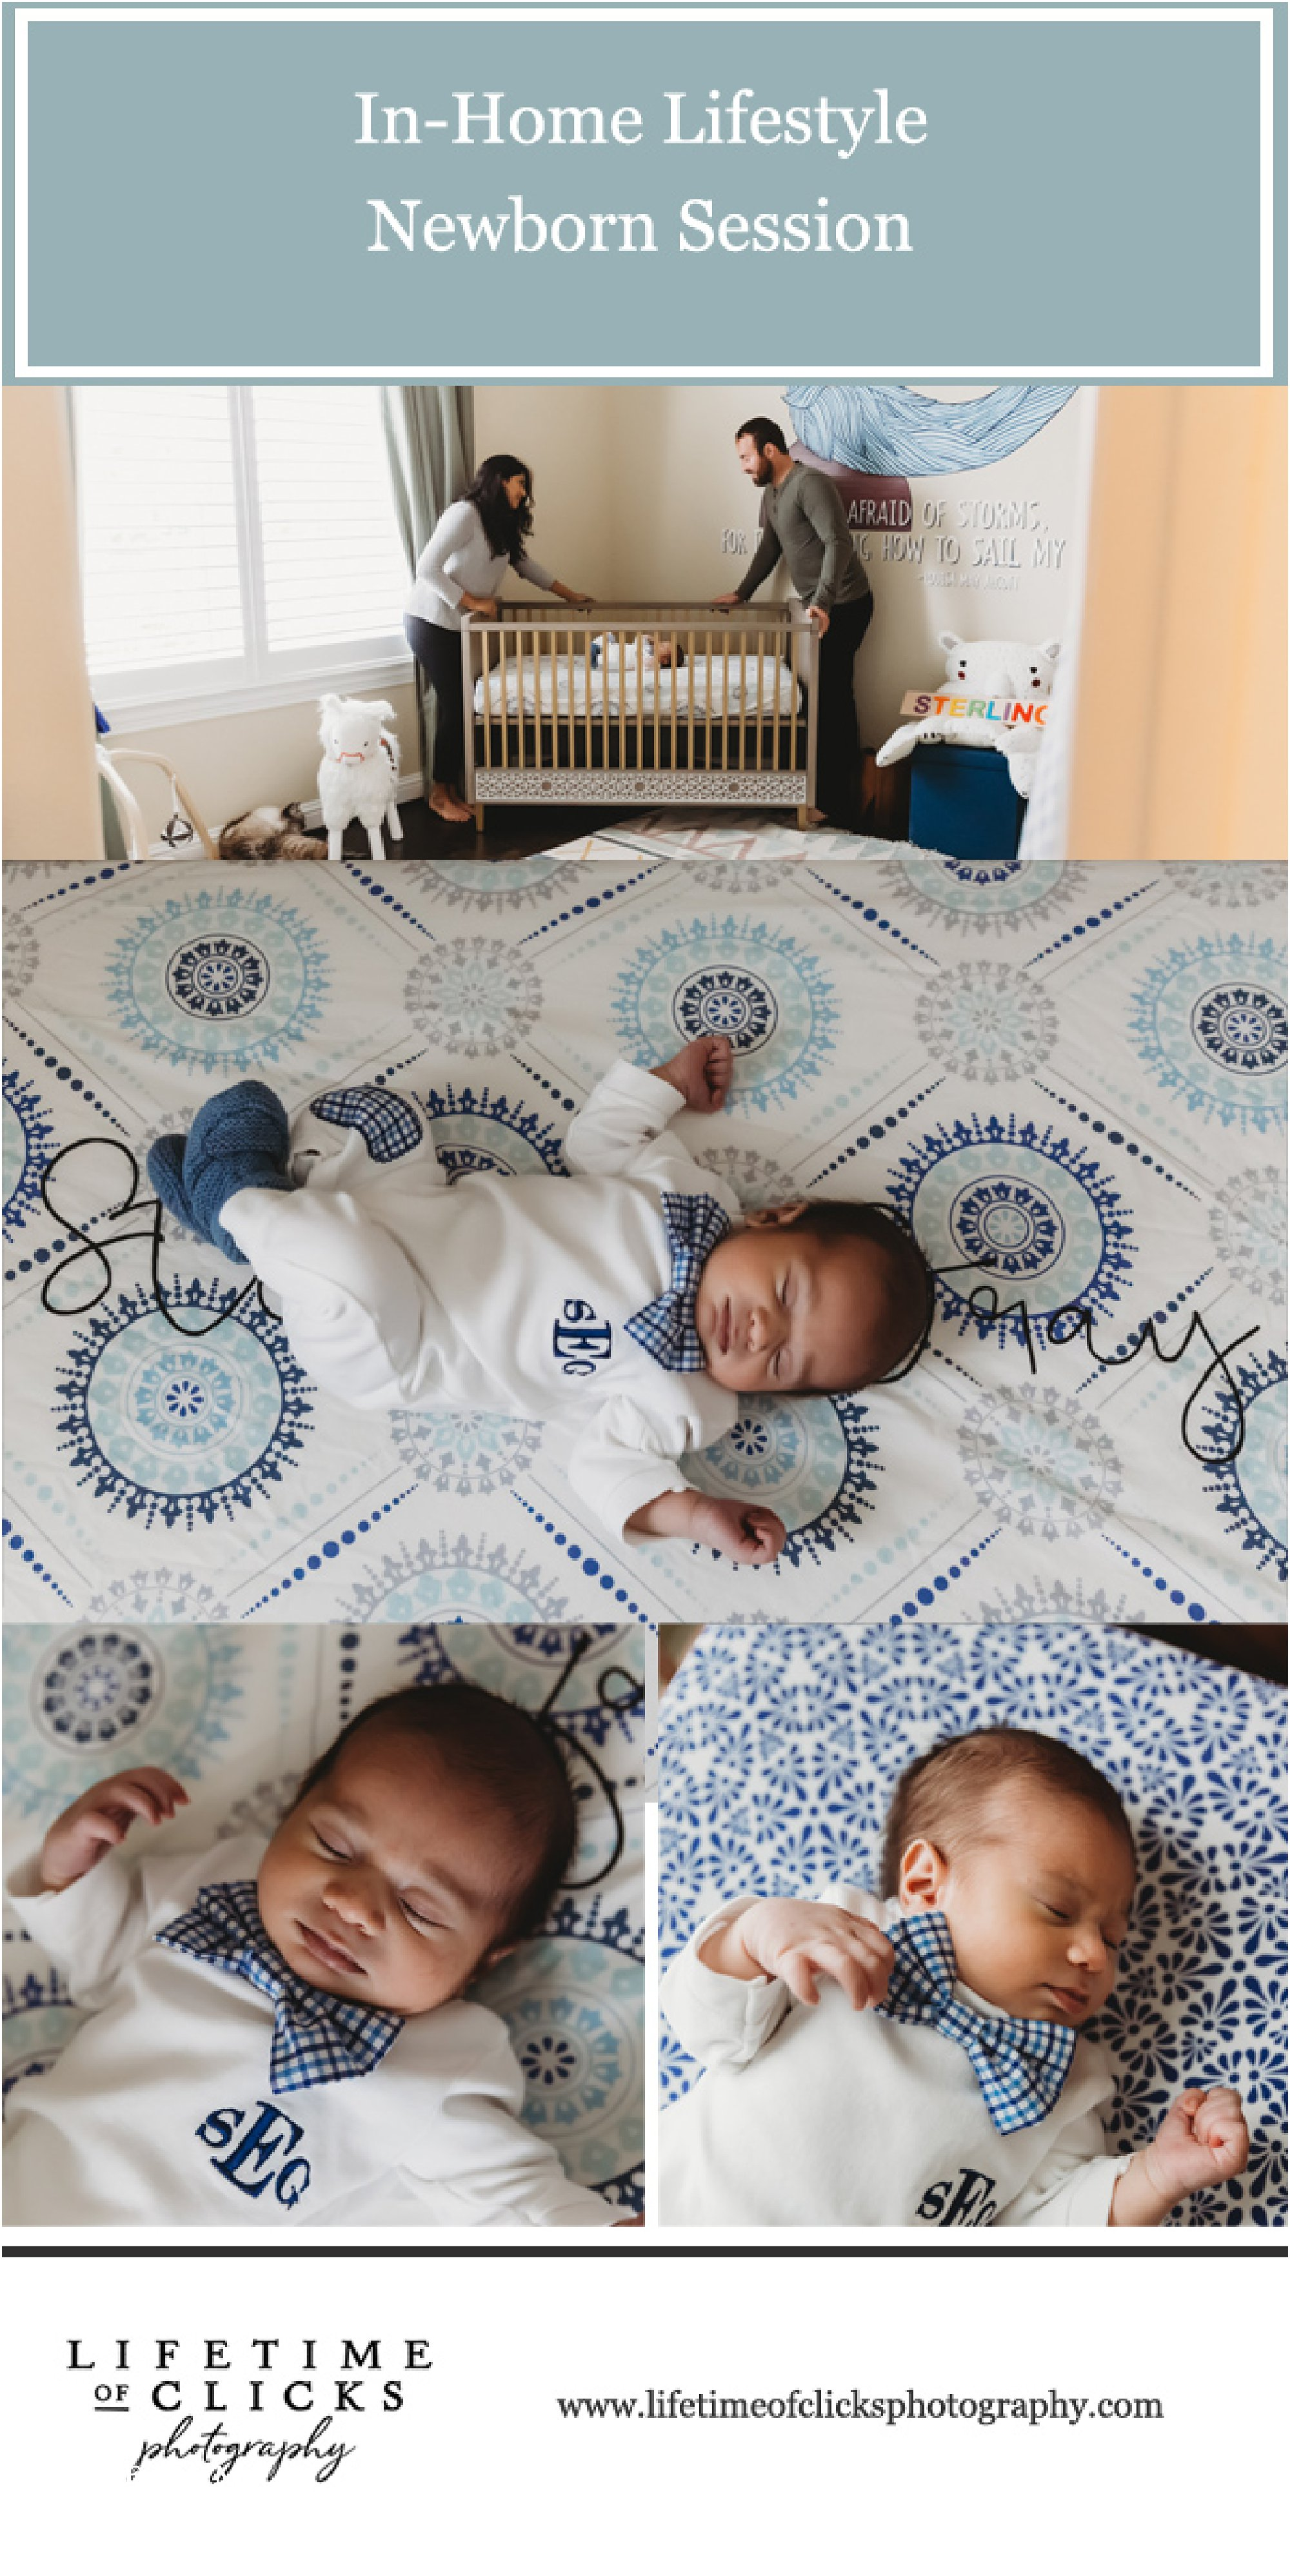 In-Home Lifestyle Newborn Session by Lifetime of Clicks Photography | Newborn Photography Session in Katy, TX